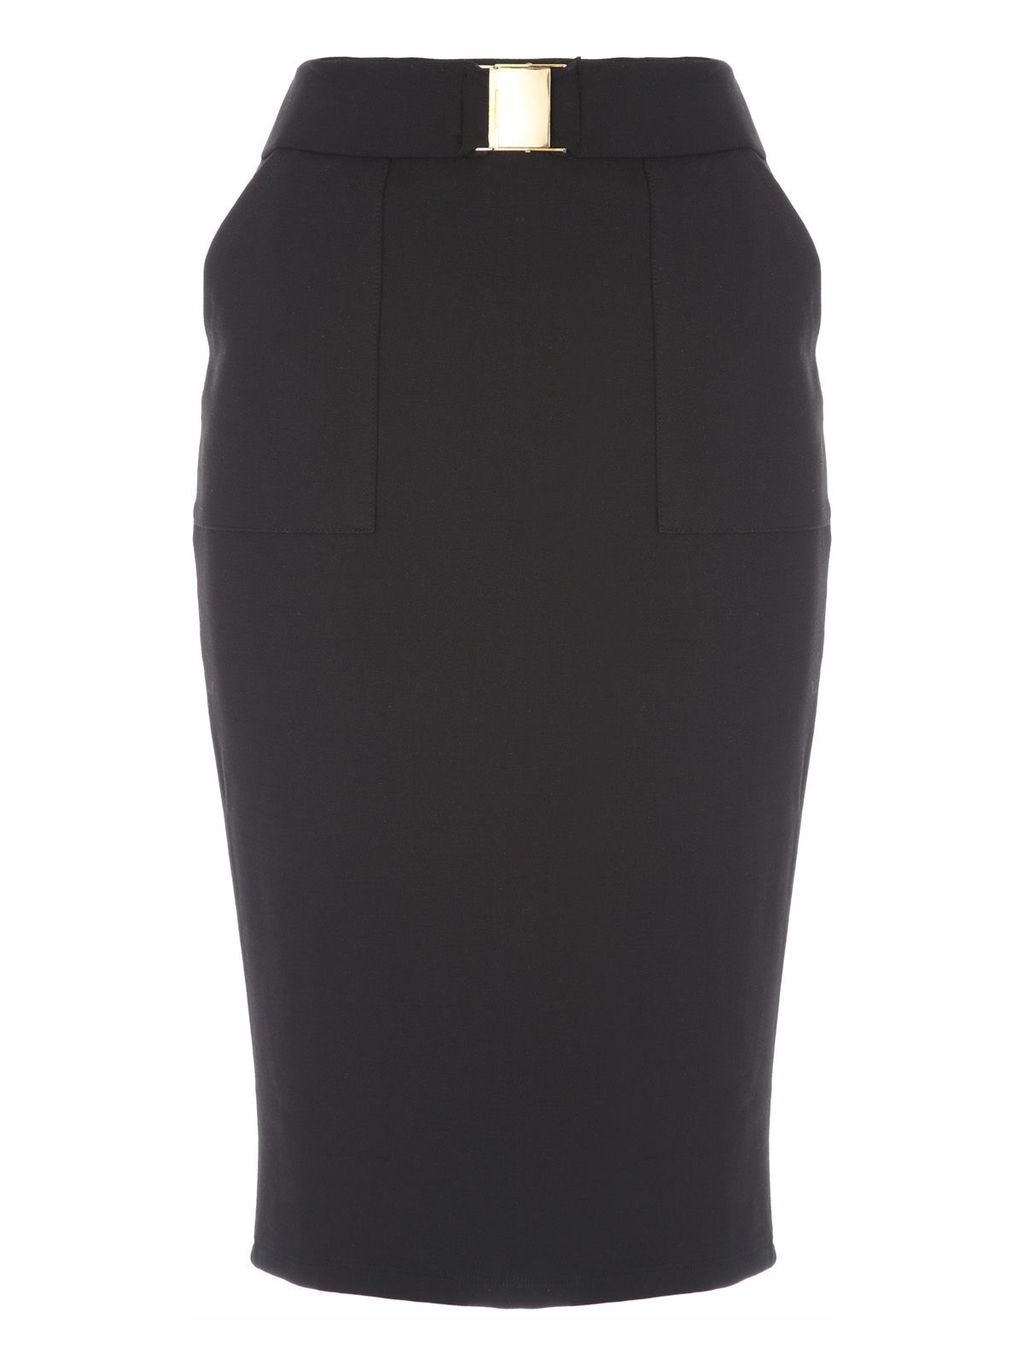 Black Buckle Pencil Skirt, Black - pattern: plain; style: pencil; fit: tailored/fitted; waist: high rise; waist detail: belted waist/tie at waist/drawstring; predominant colour: black; occasions: evening, work, creative work; length: just above the knee; fibres: viscose/rayon - stretch; pattern type: fabric; texture group: woven light midweight; season: s/s 2016; wardrobe: basic